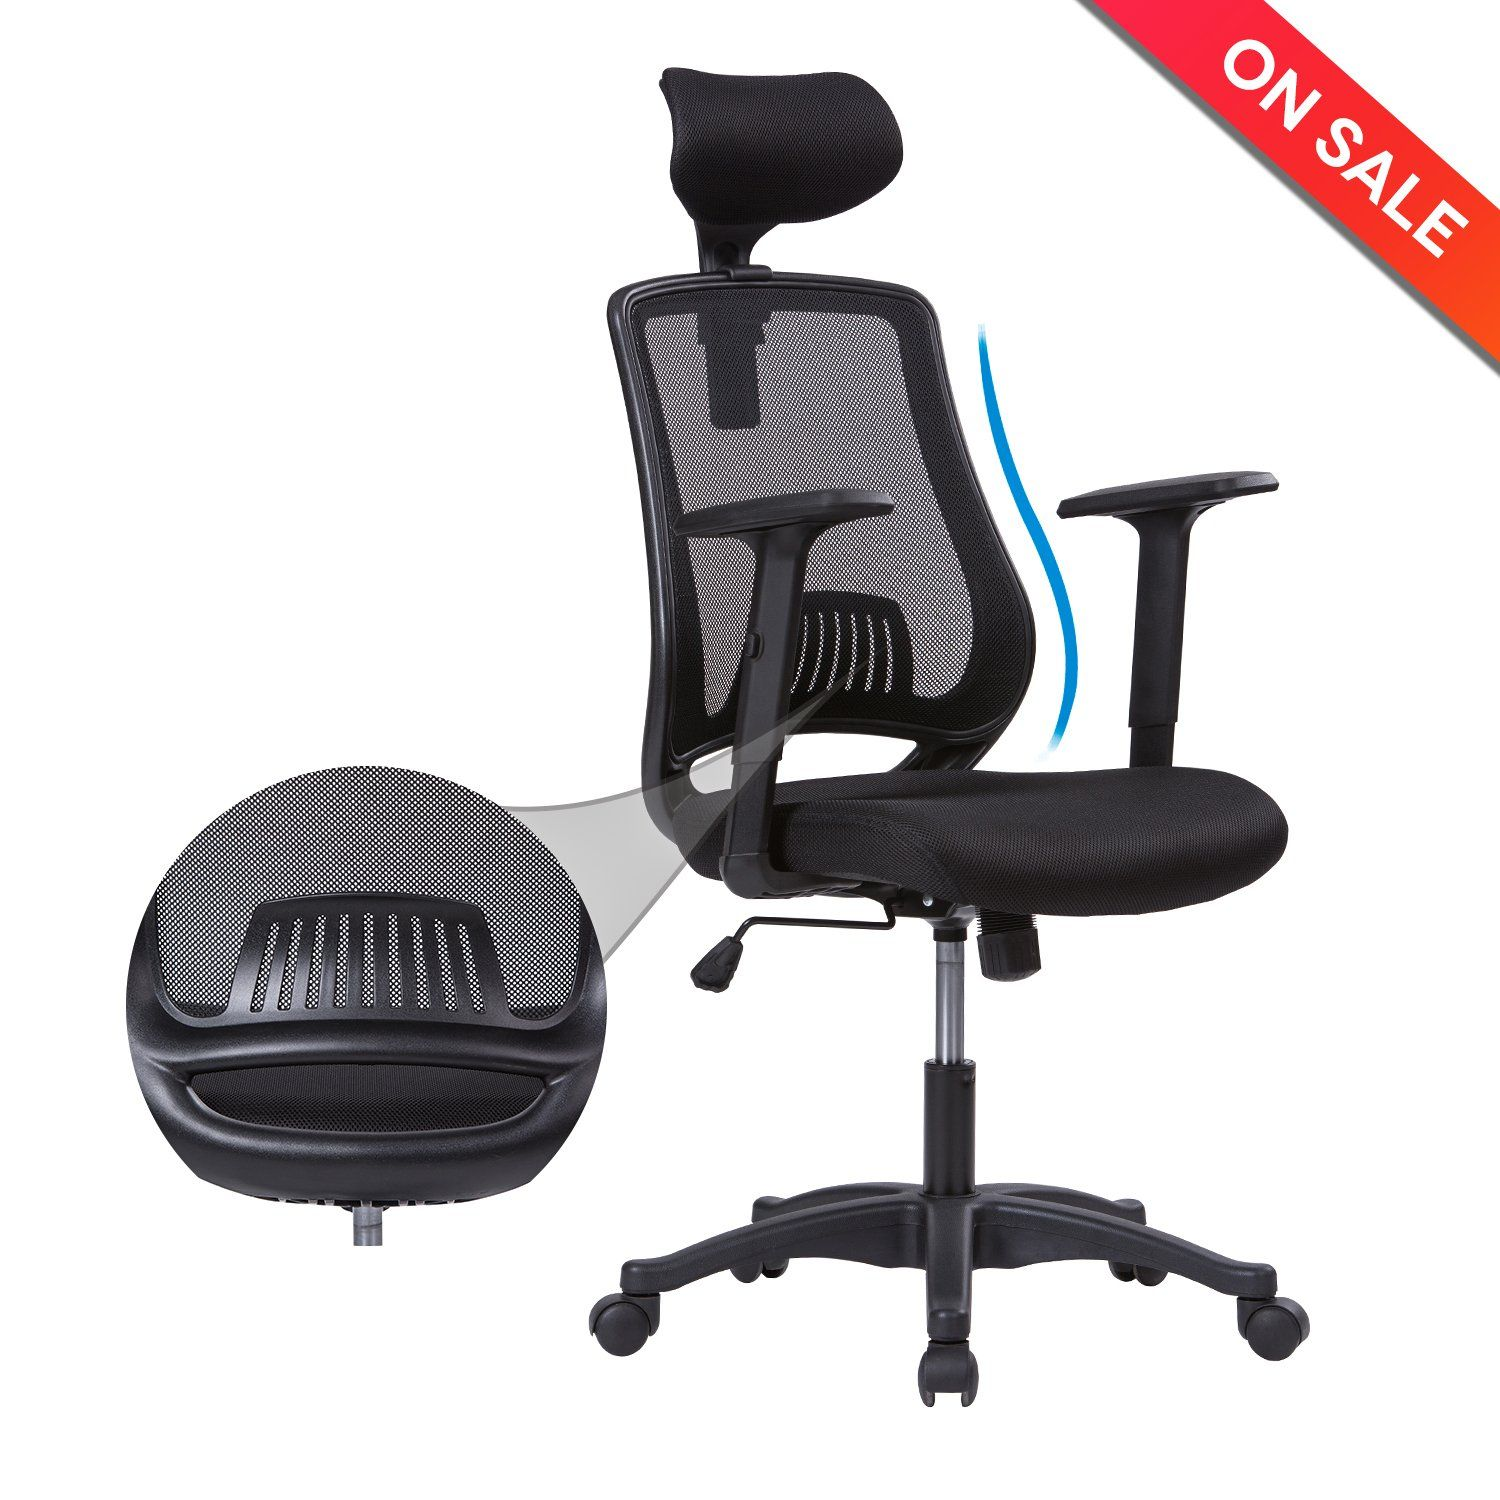 new racing itm chair ergonomic design back blue office gaming high computer oc